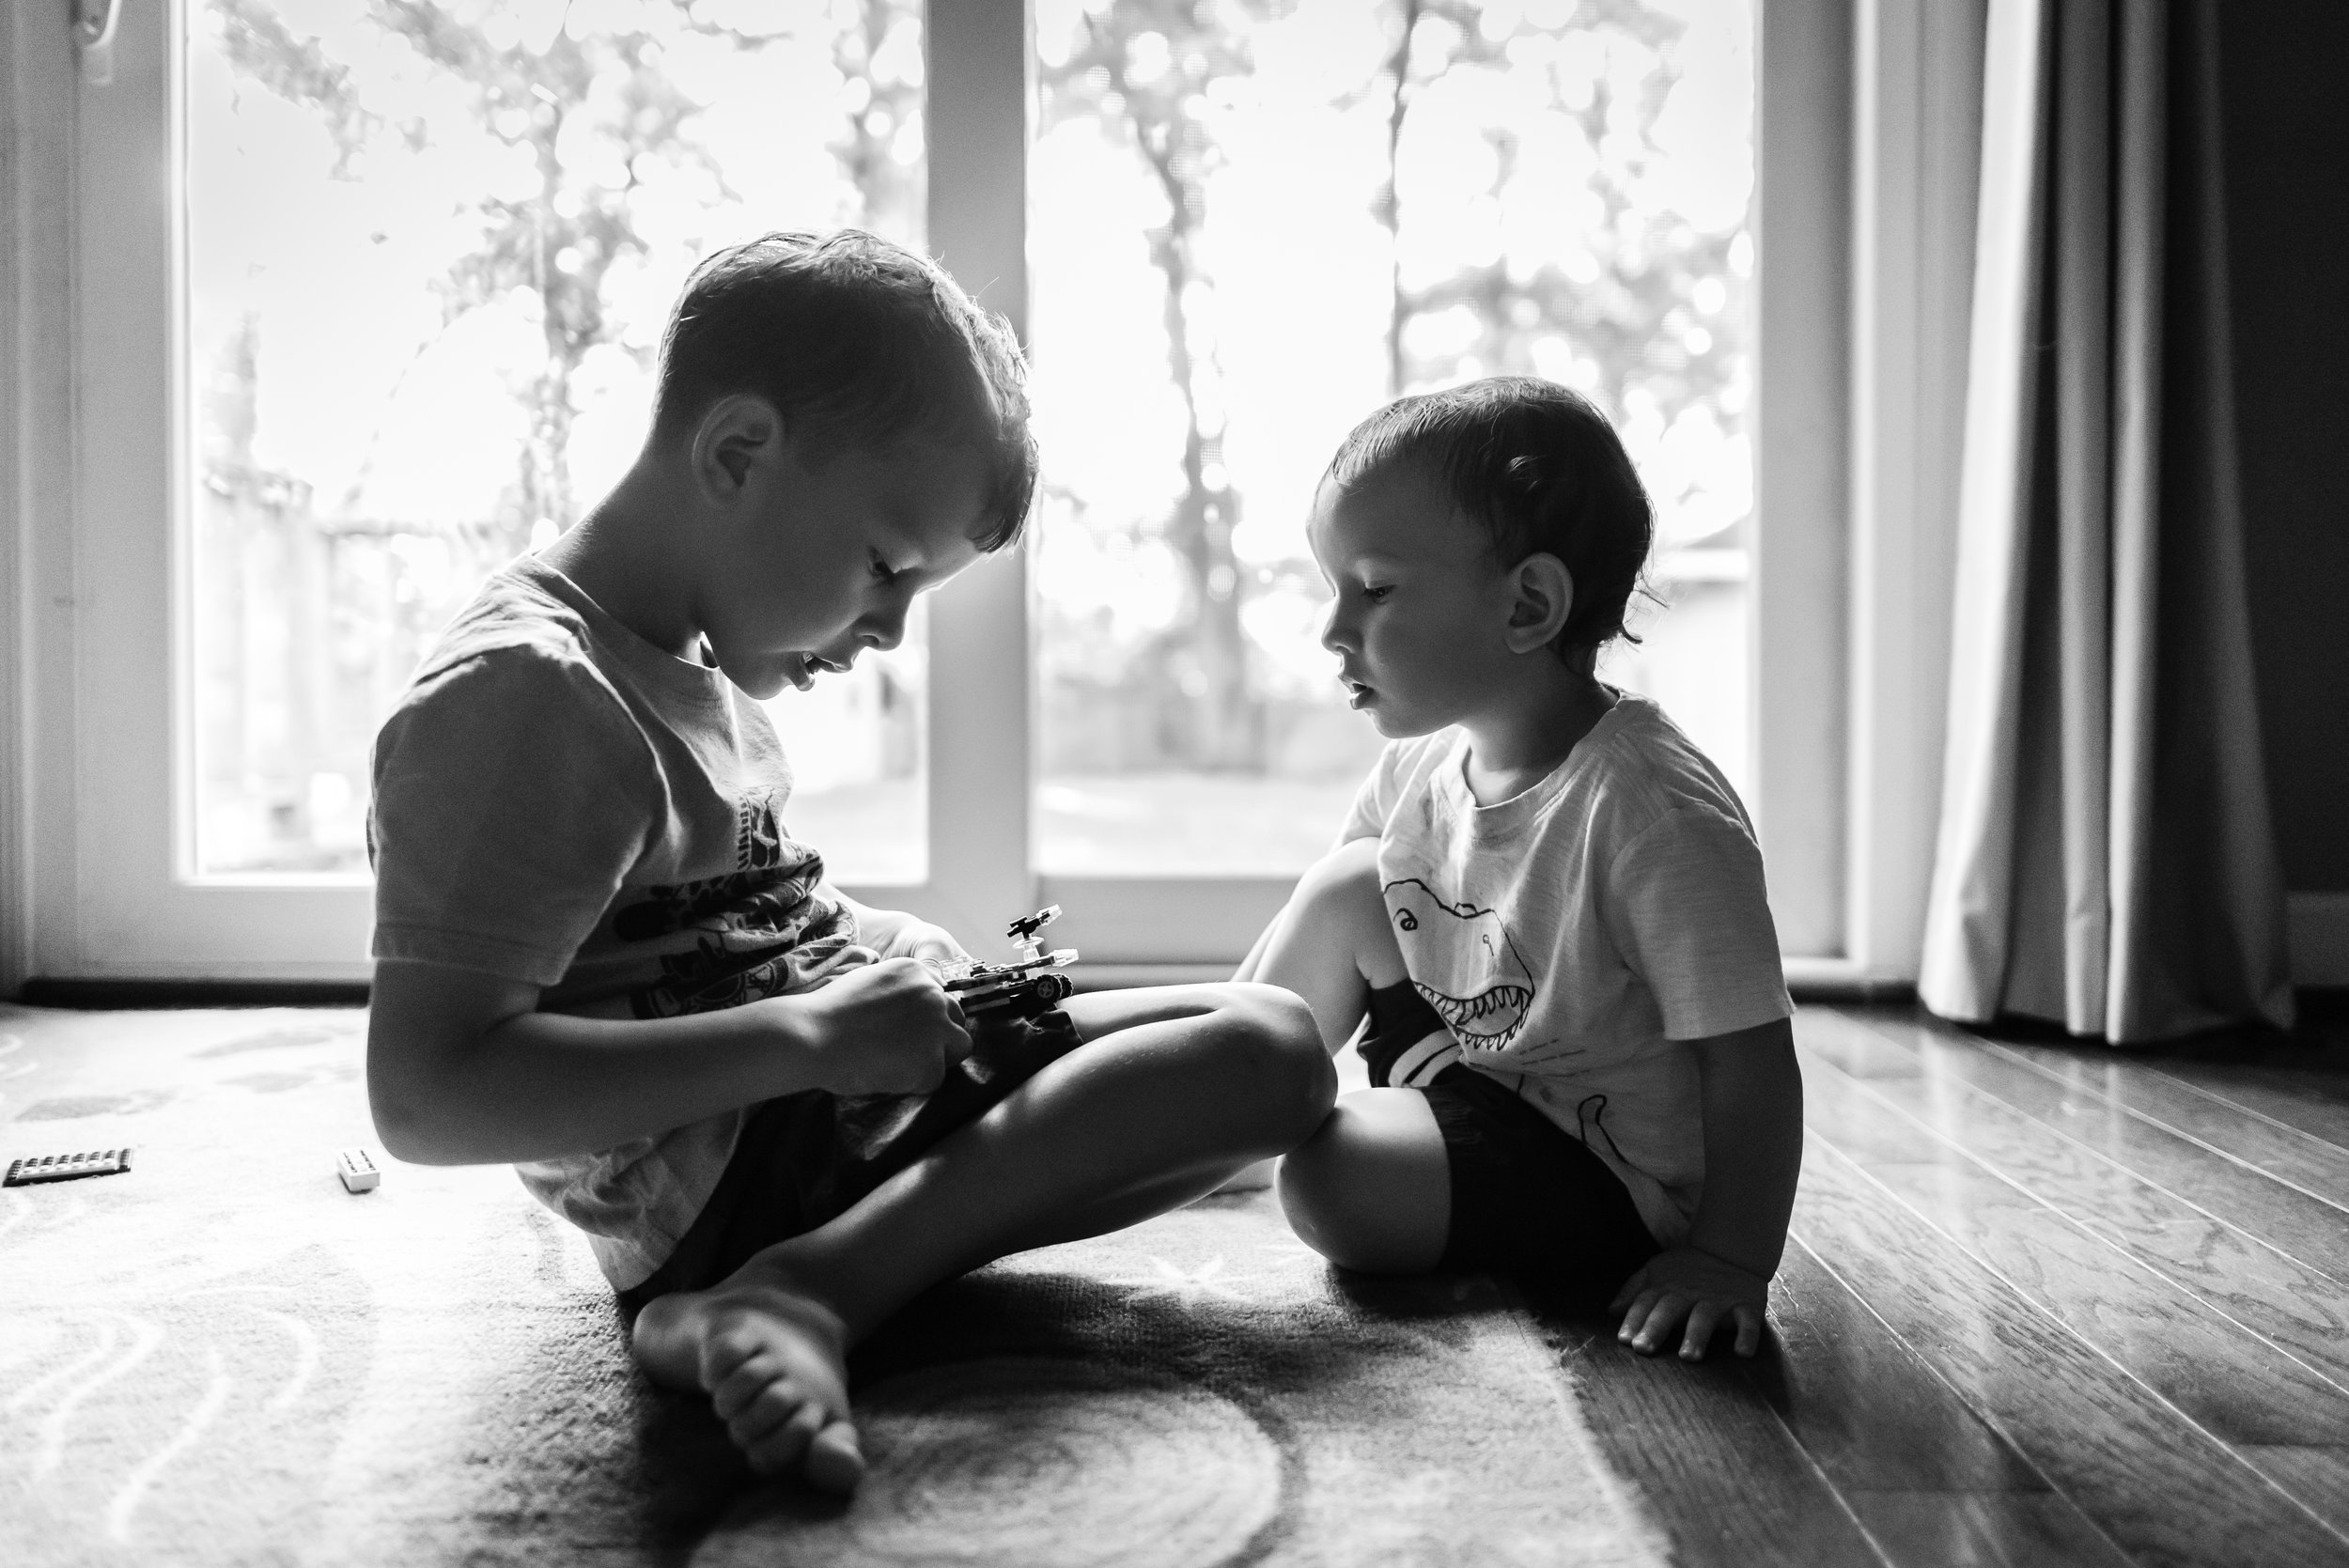 Brothers playing legos together by Northern Virginia Family Photographer Nicole Sanchez